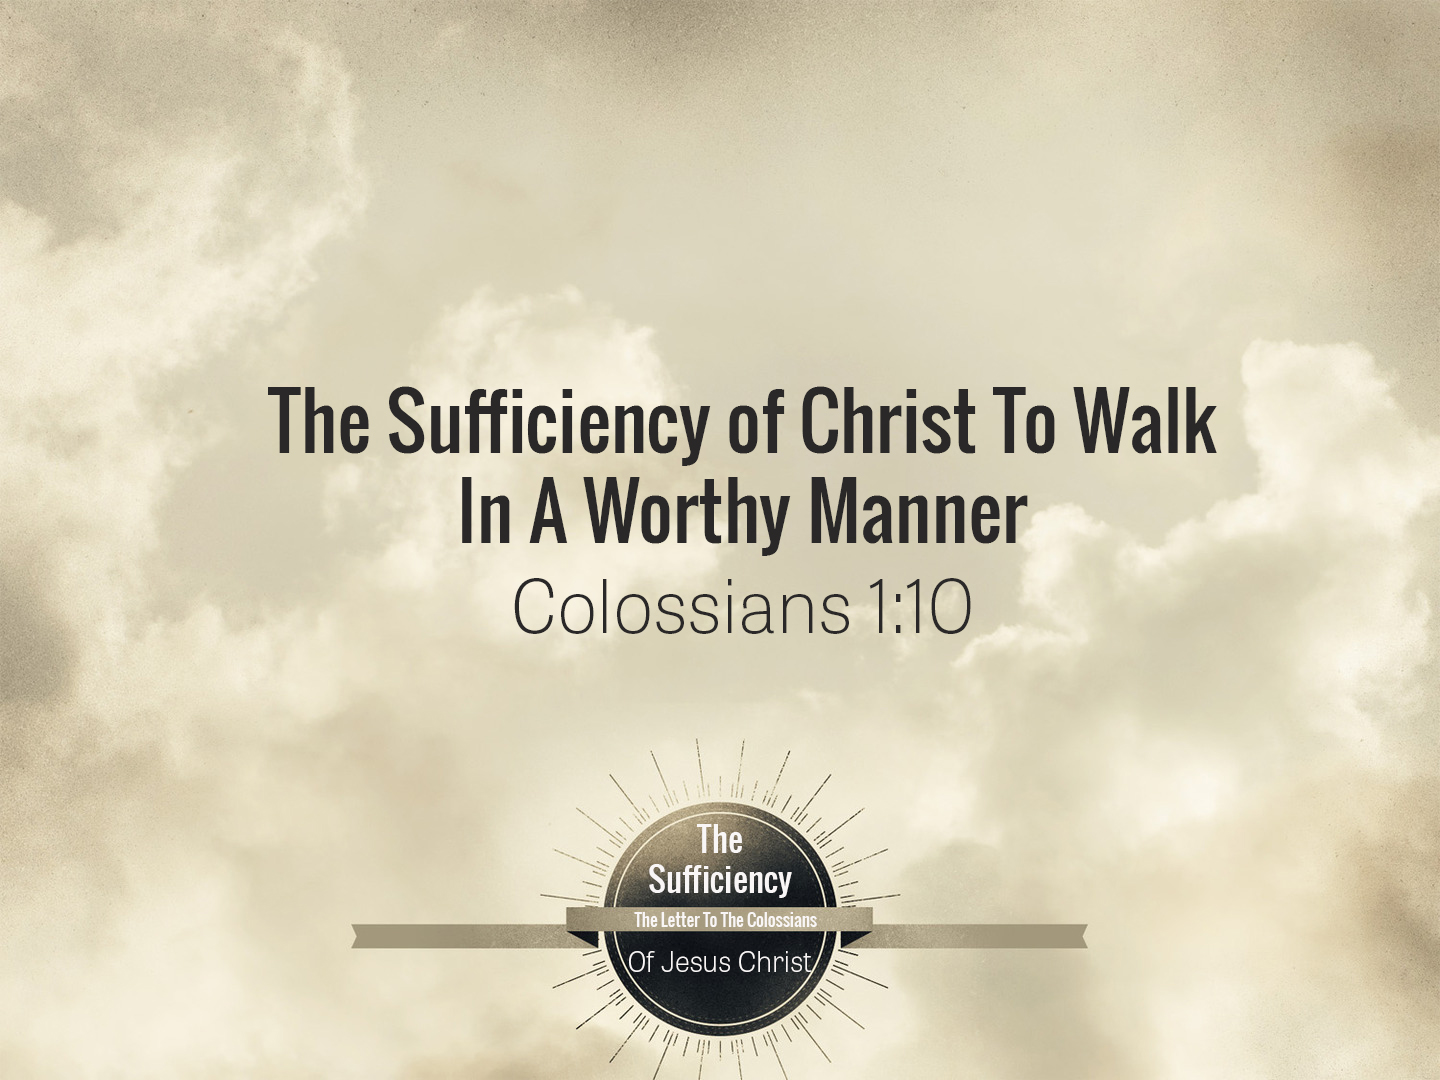 Colossians 1v10 The Sufficiency of Christ To Walk In A Worthy Manner